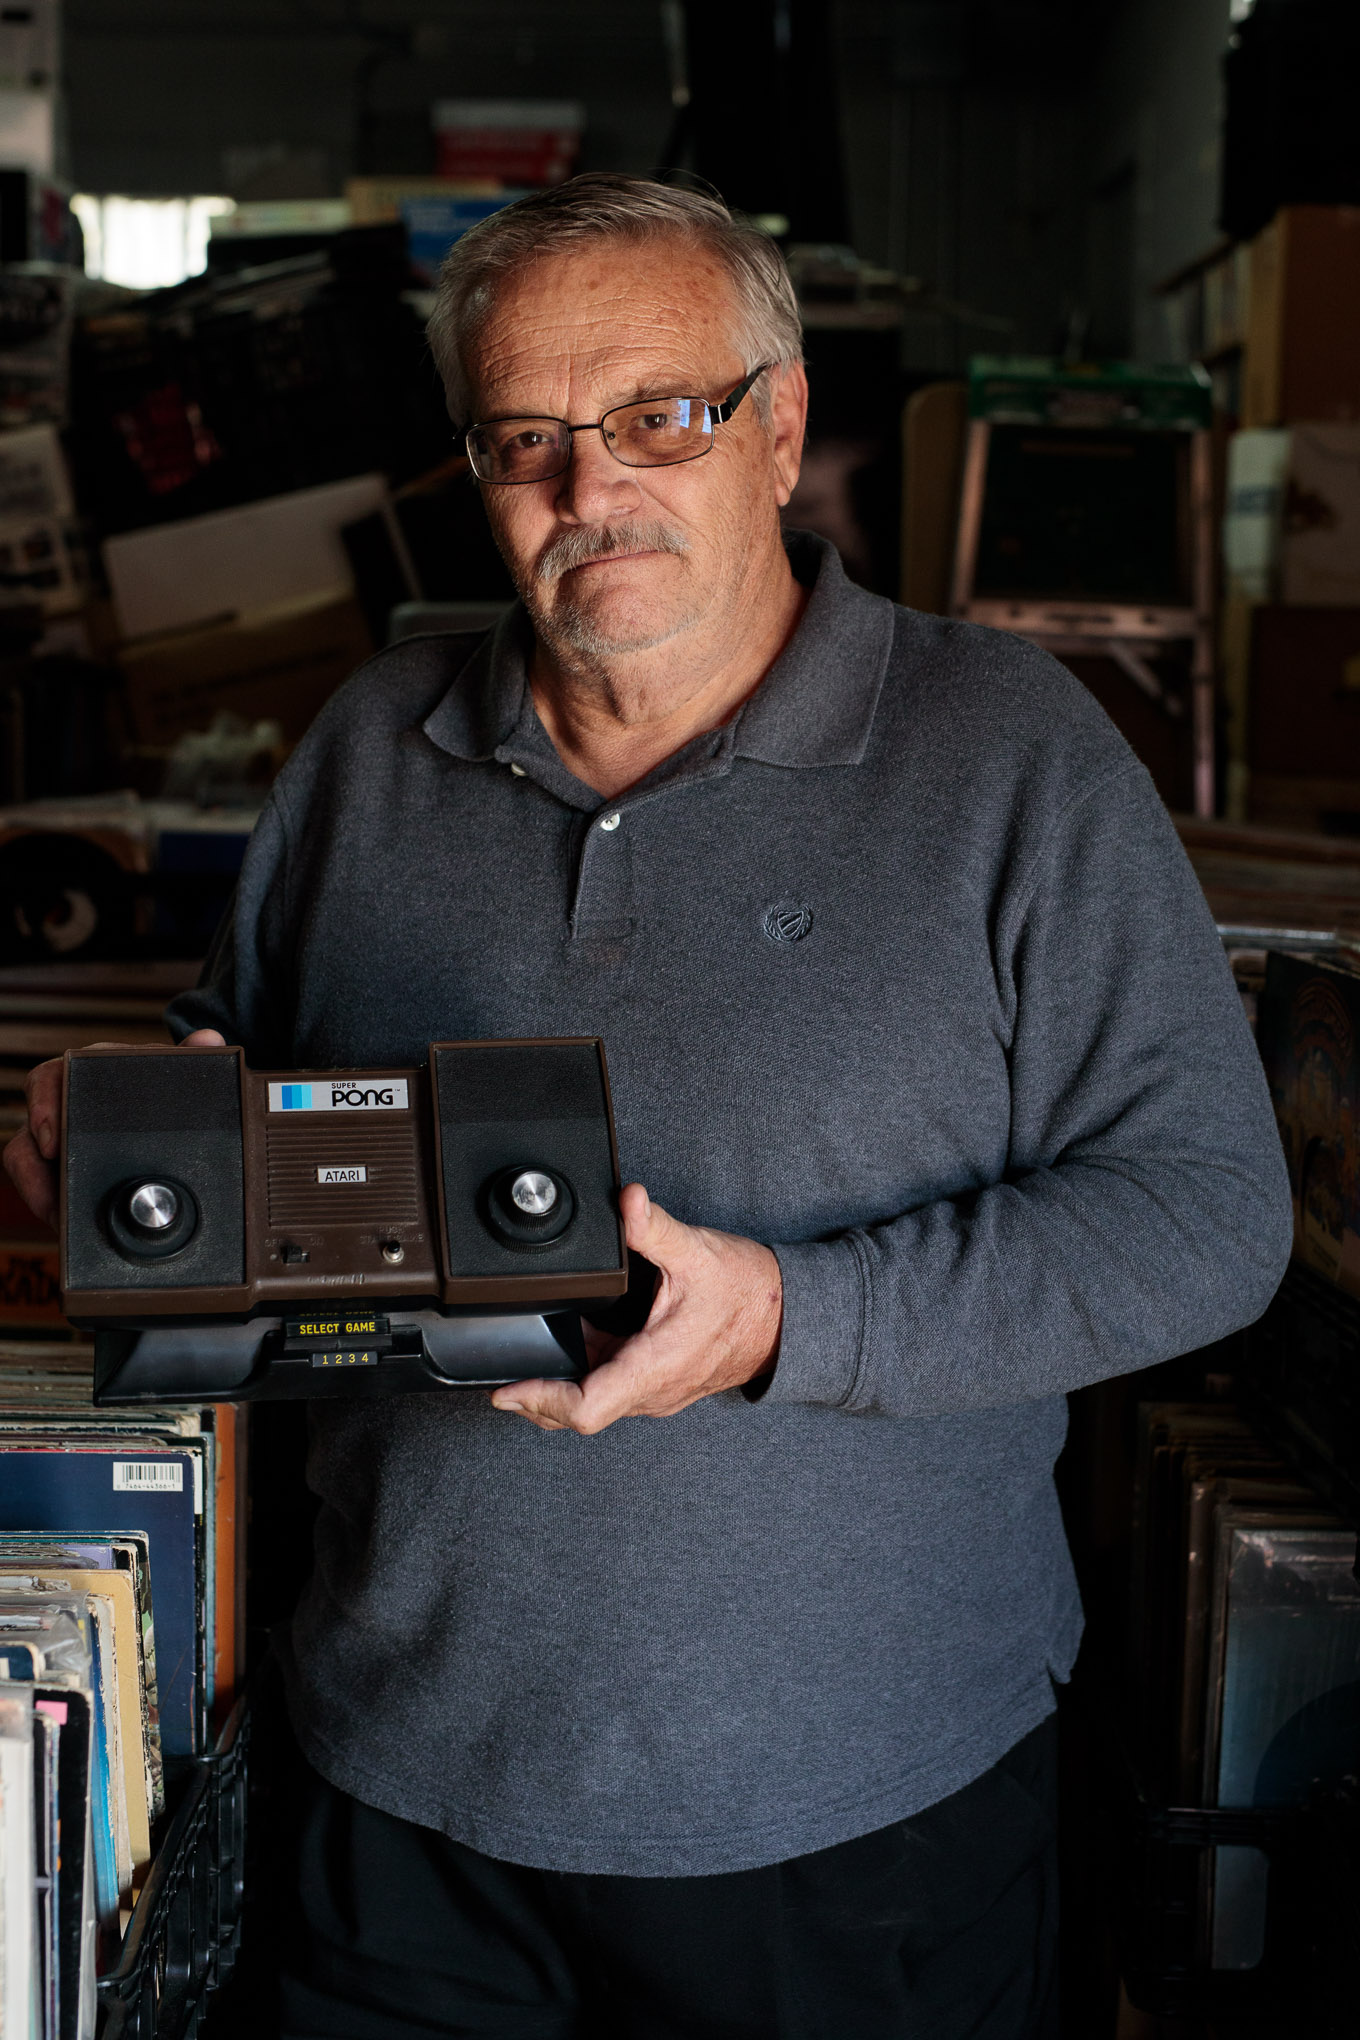 Alejandro Martinez holds an Atari Super Pong Model C-140 unit, the same device he carried around with him to department stores as a young Atari salesman in the seventies.